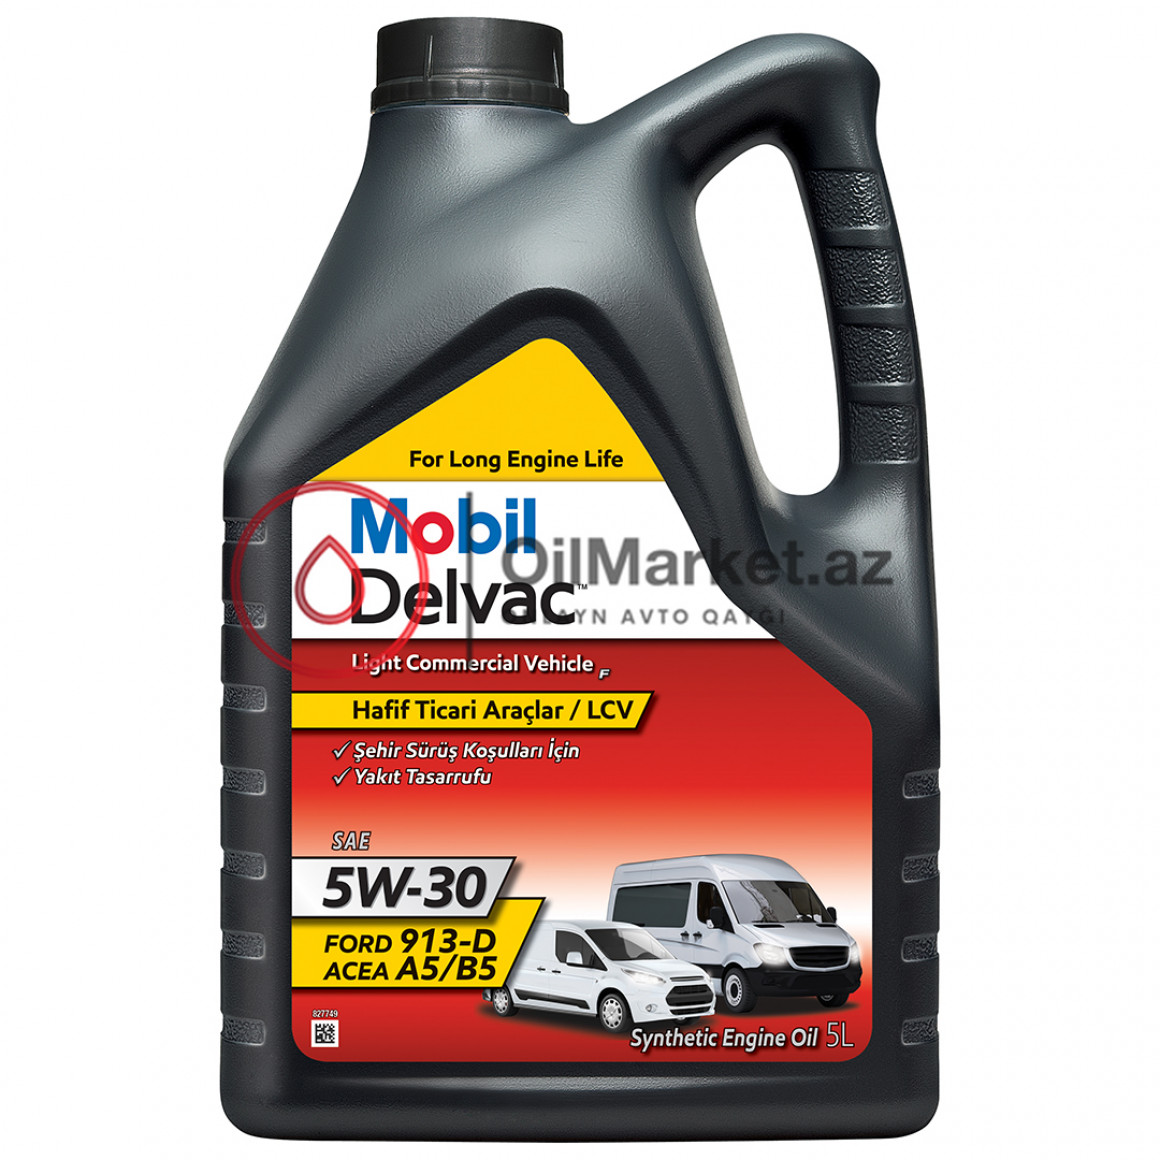 Mobil Delvac Light Commercial Vehicle F 5W-30